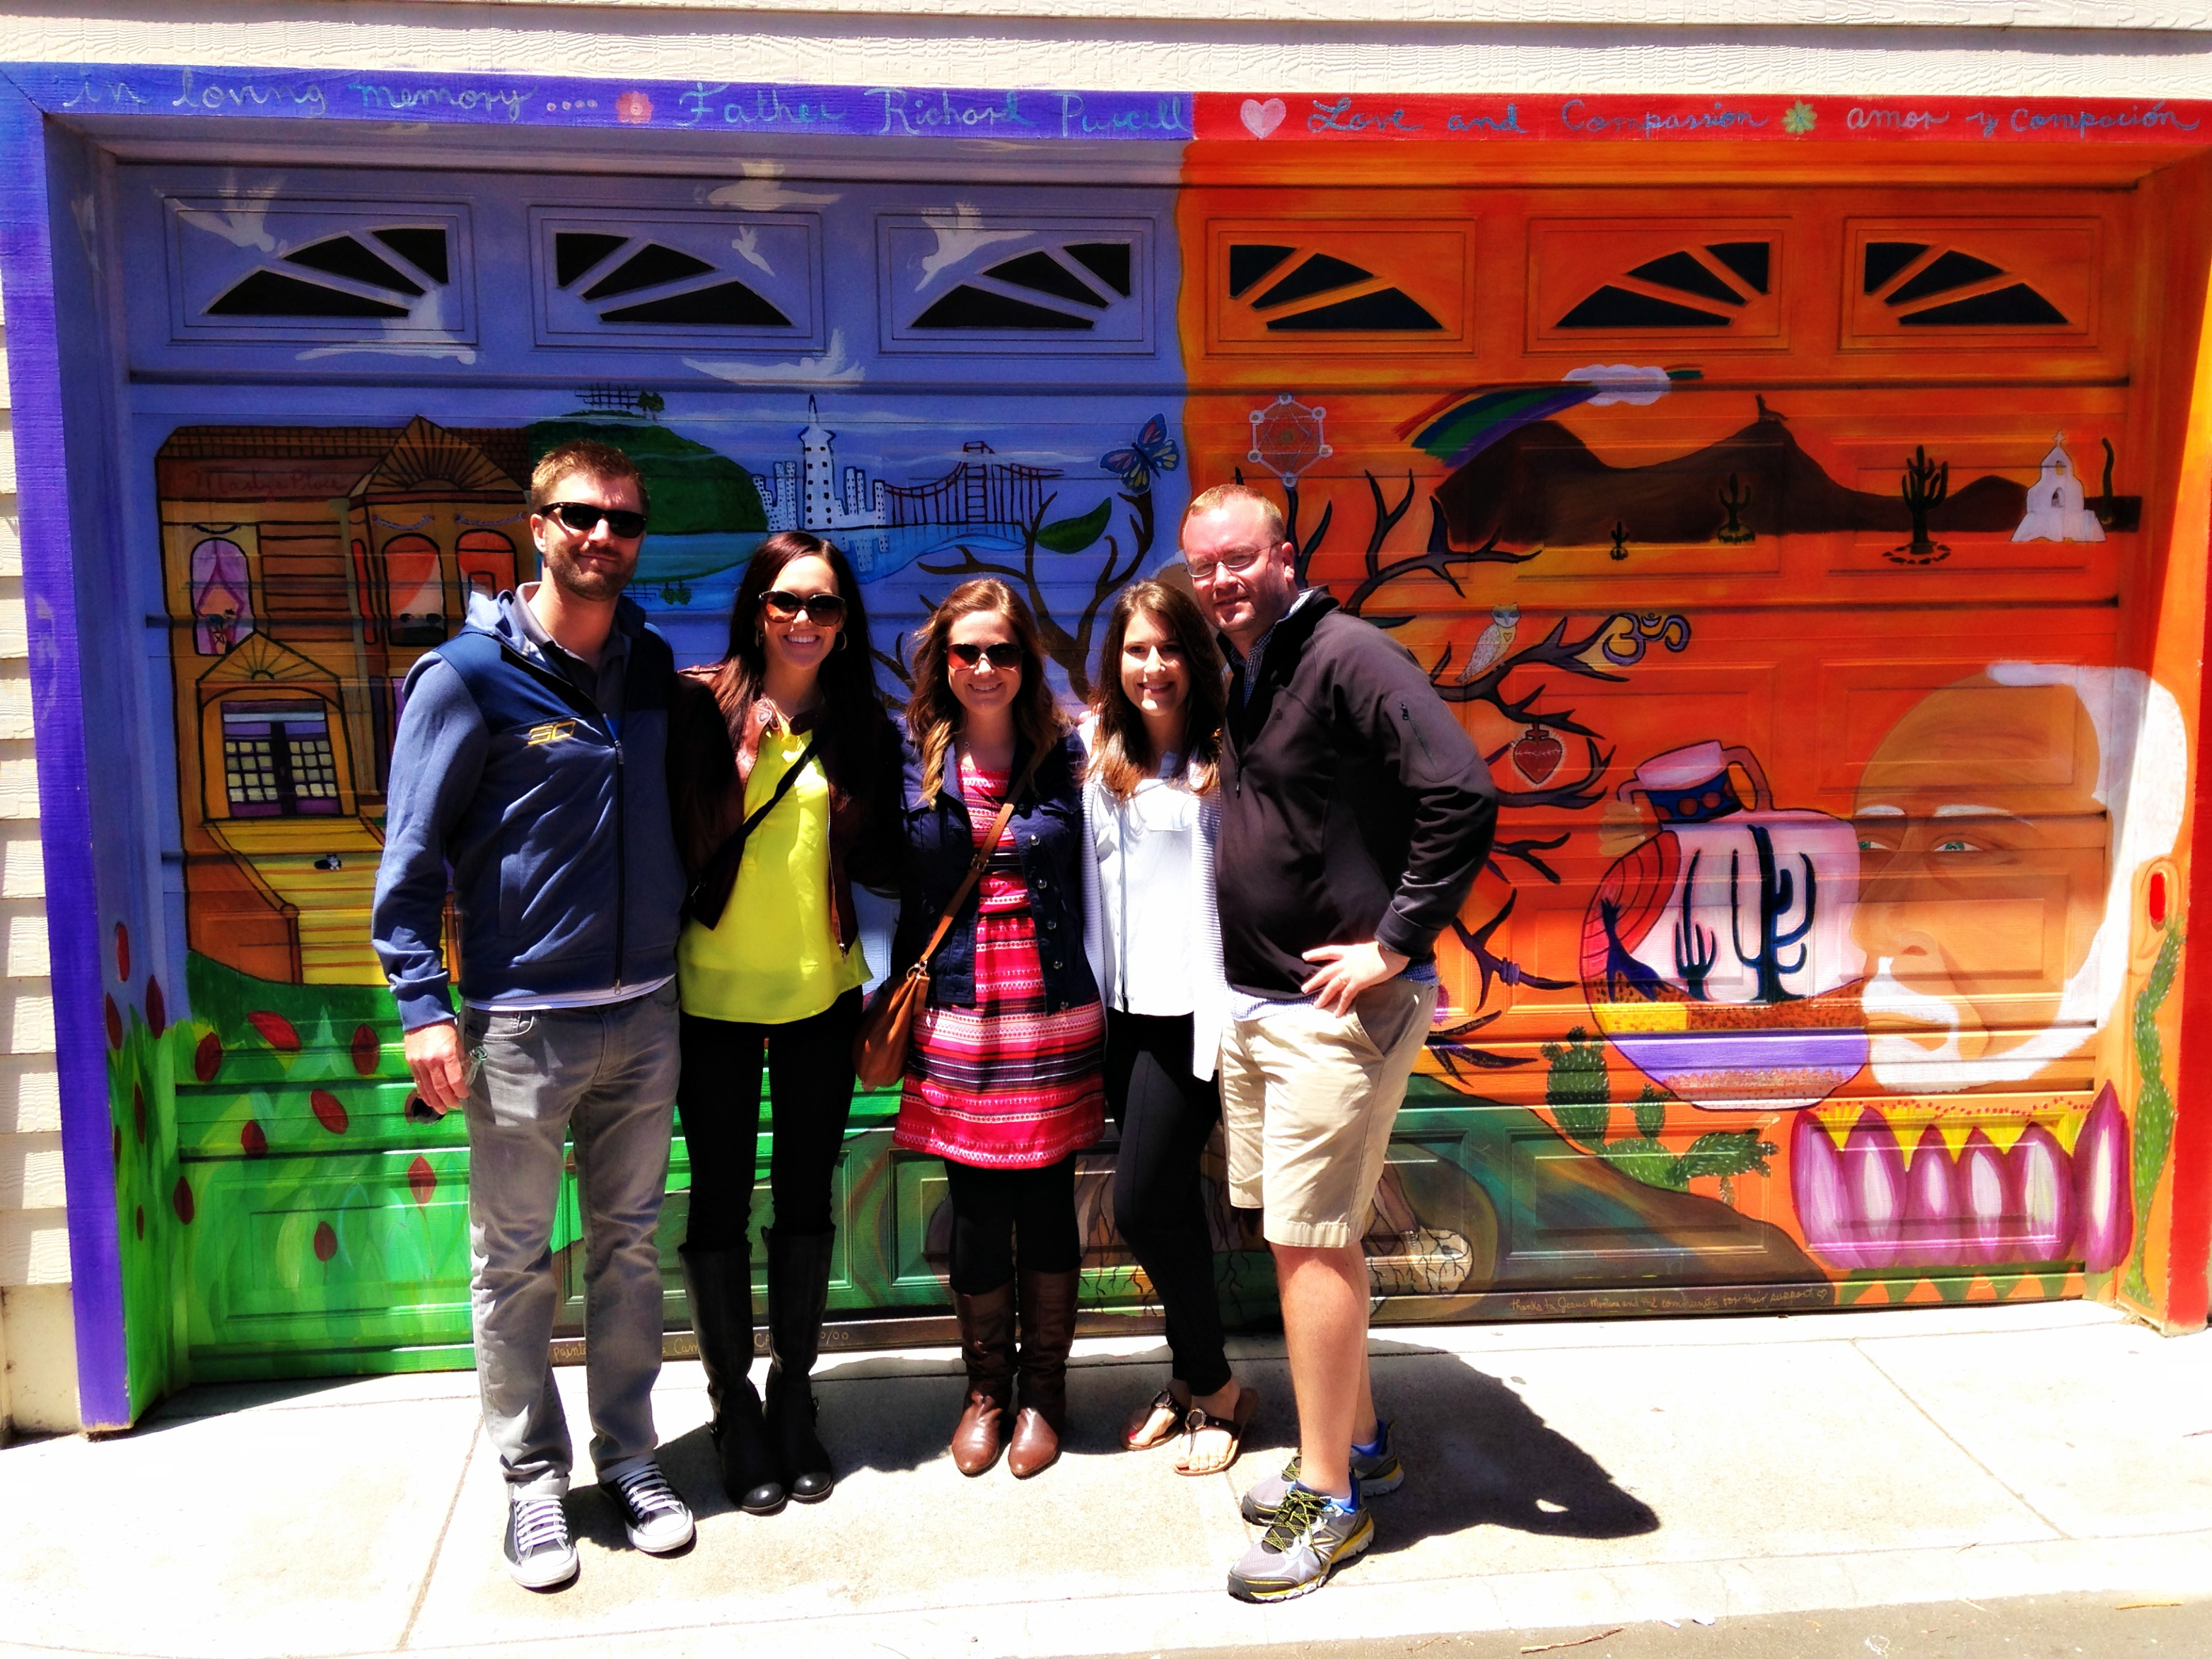 Group in front of murals